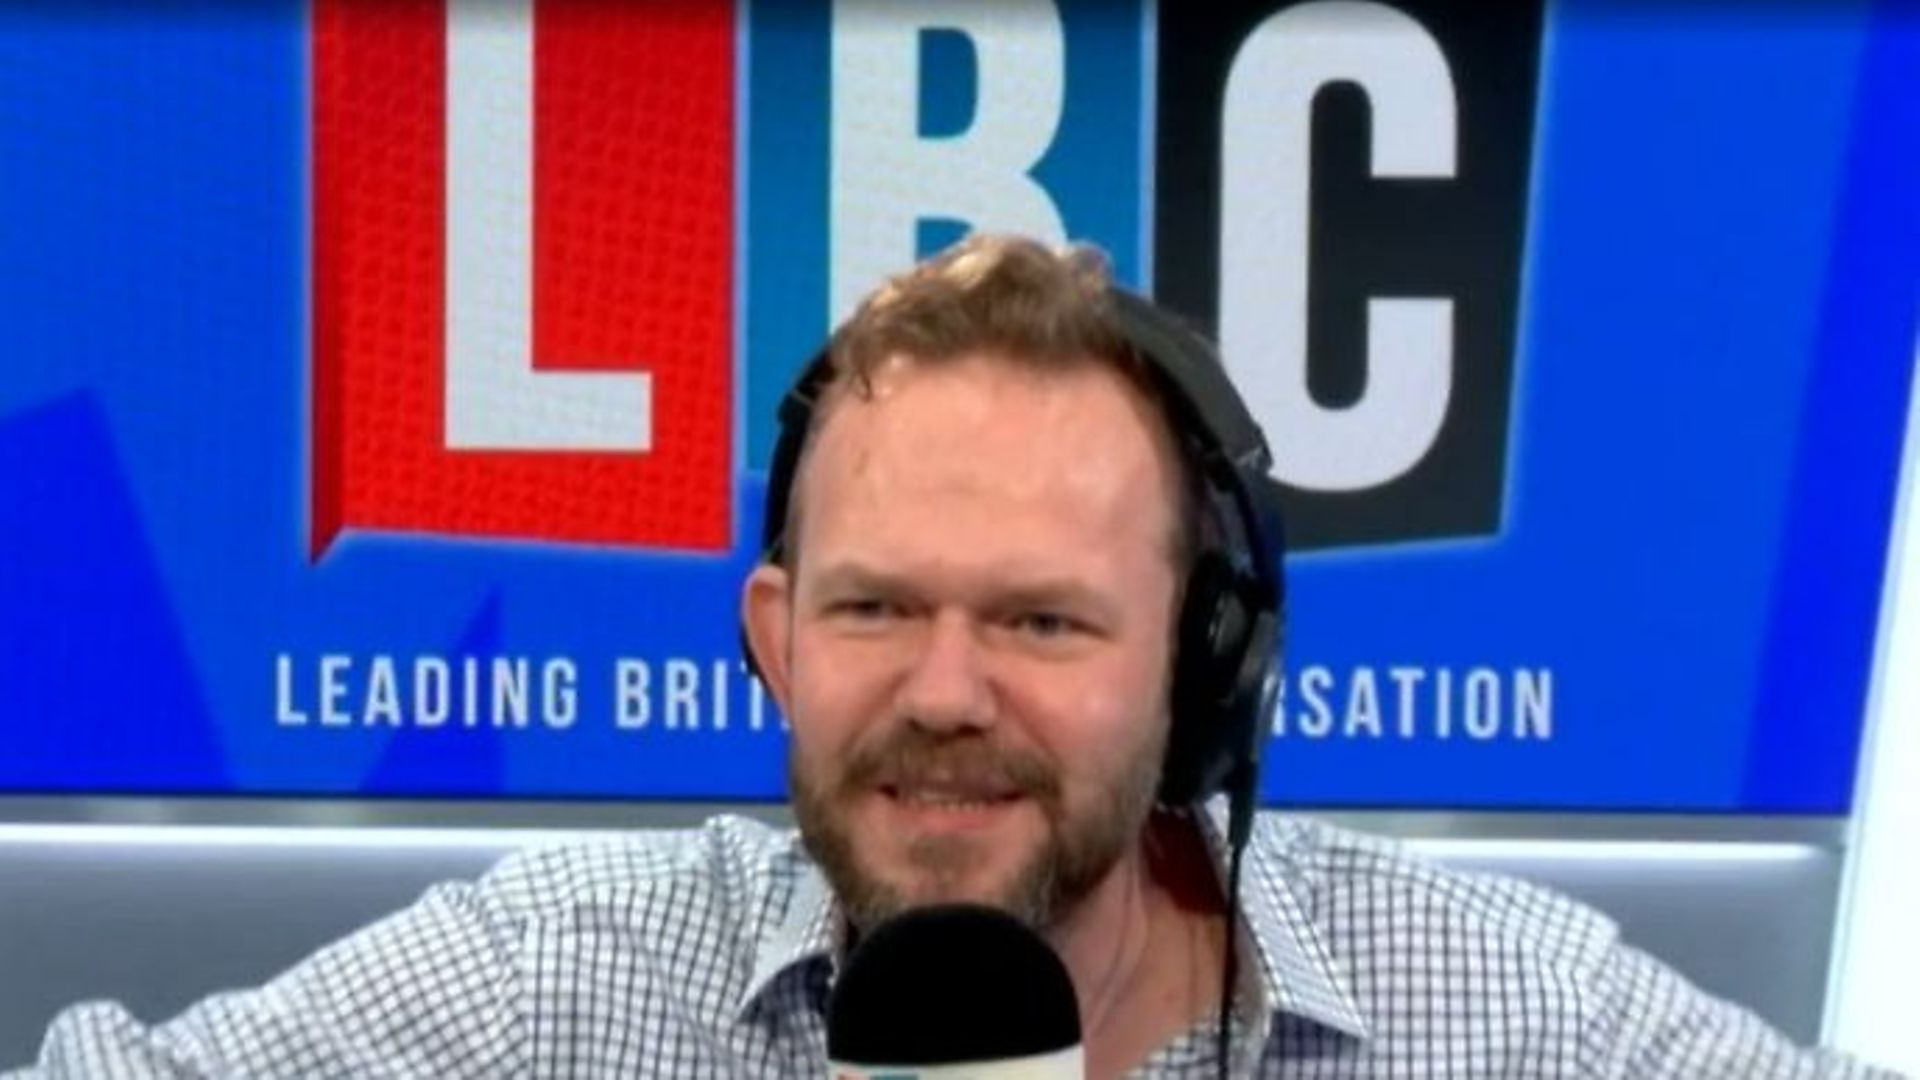 James O'Brien compared NHS Track and Trace boss, Dido Harding, to Rodney Trotter from Only Fools and Horses - Credit: LBC